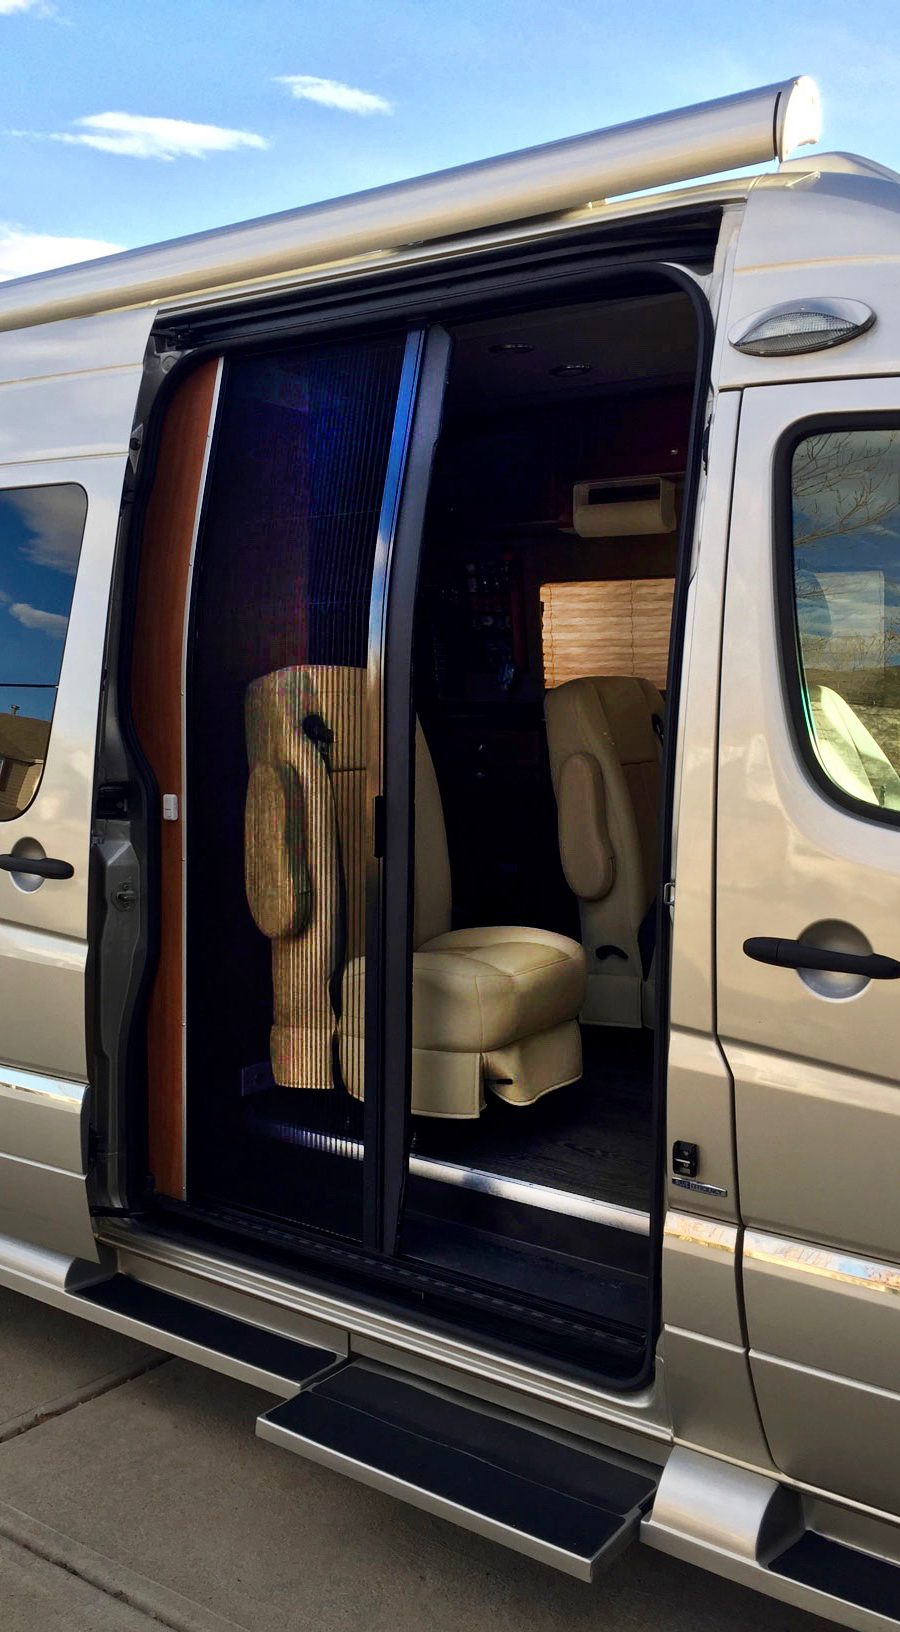 Retractable screen door shown half open on a RoadTrek conversion van.